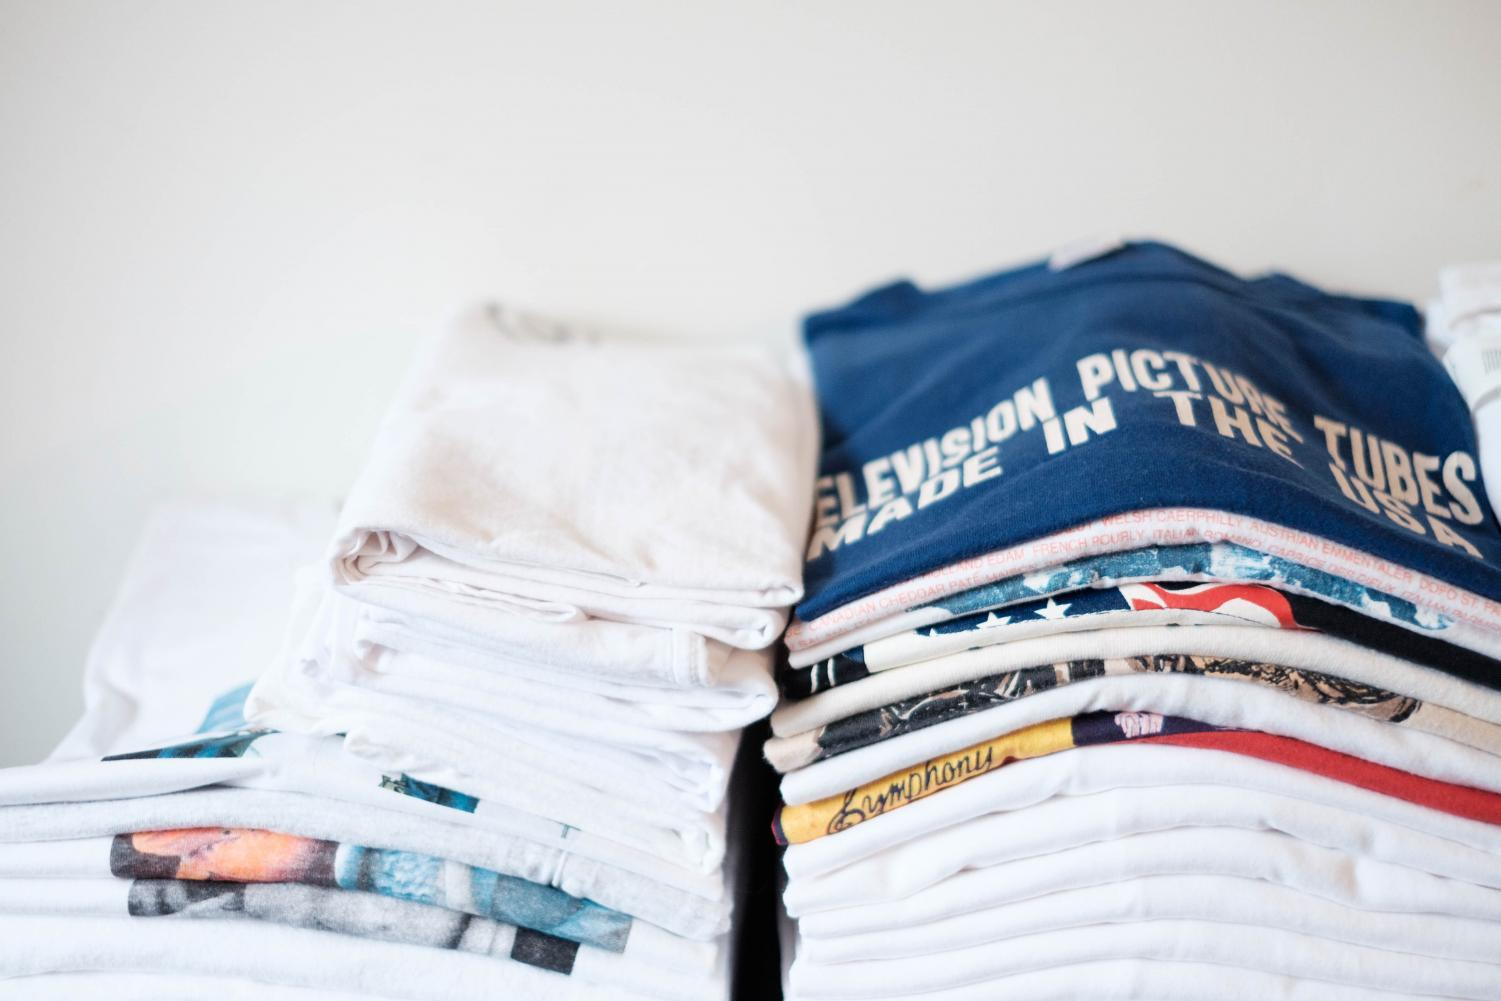 LS freshman Matias Mollin, also known as Matias the Broker on Grailed, has stacks of vintage T-shirts on his bed and ready to be shipped out to his customers.